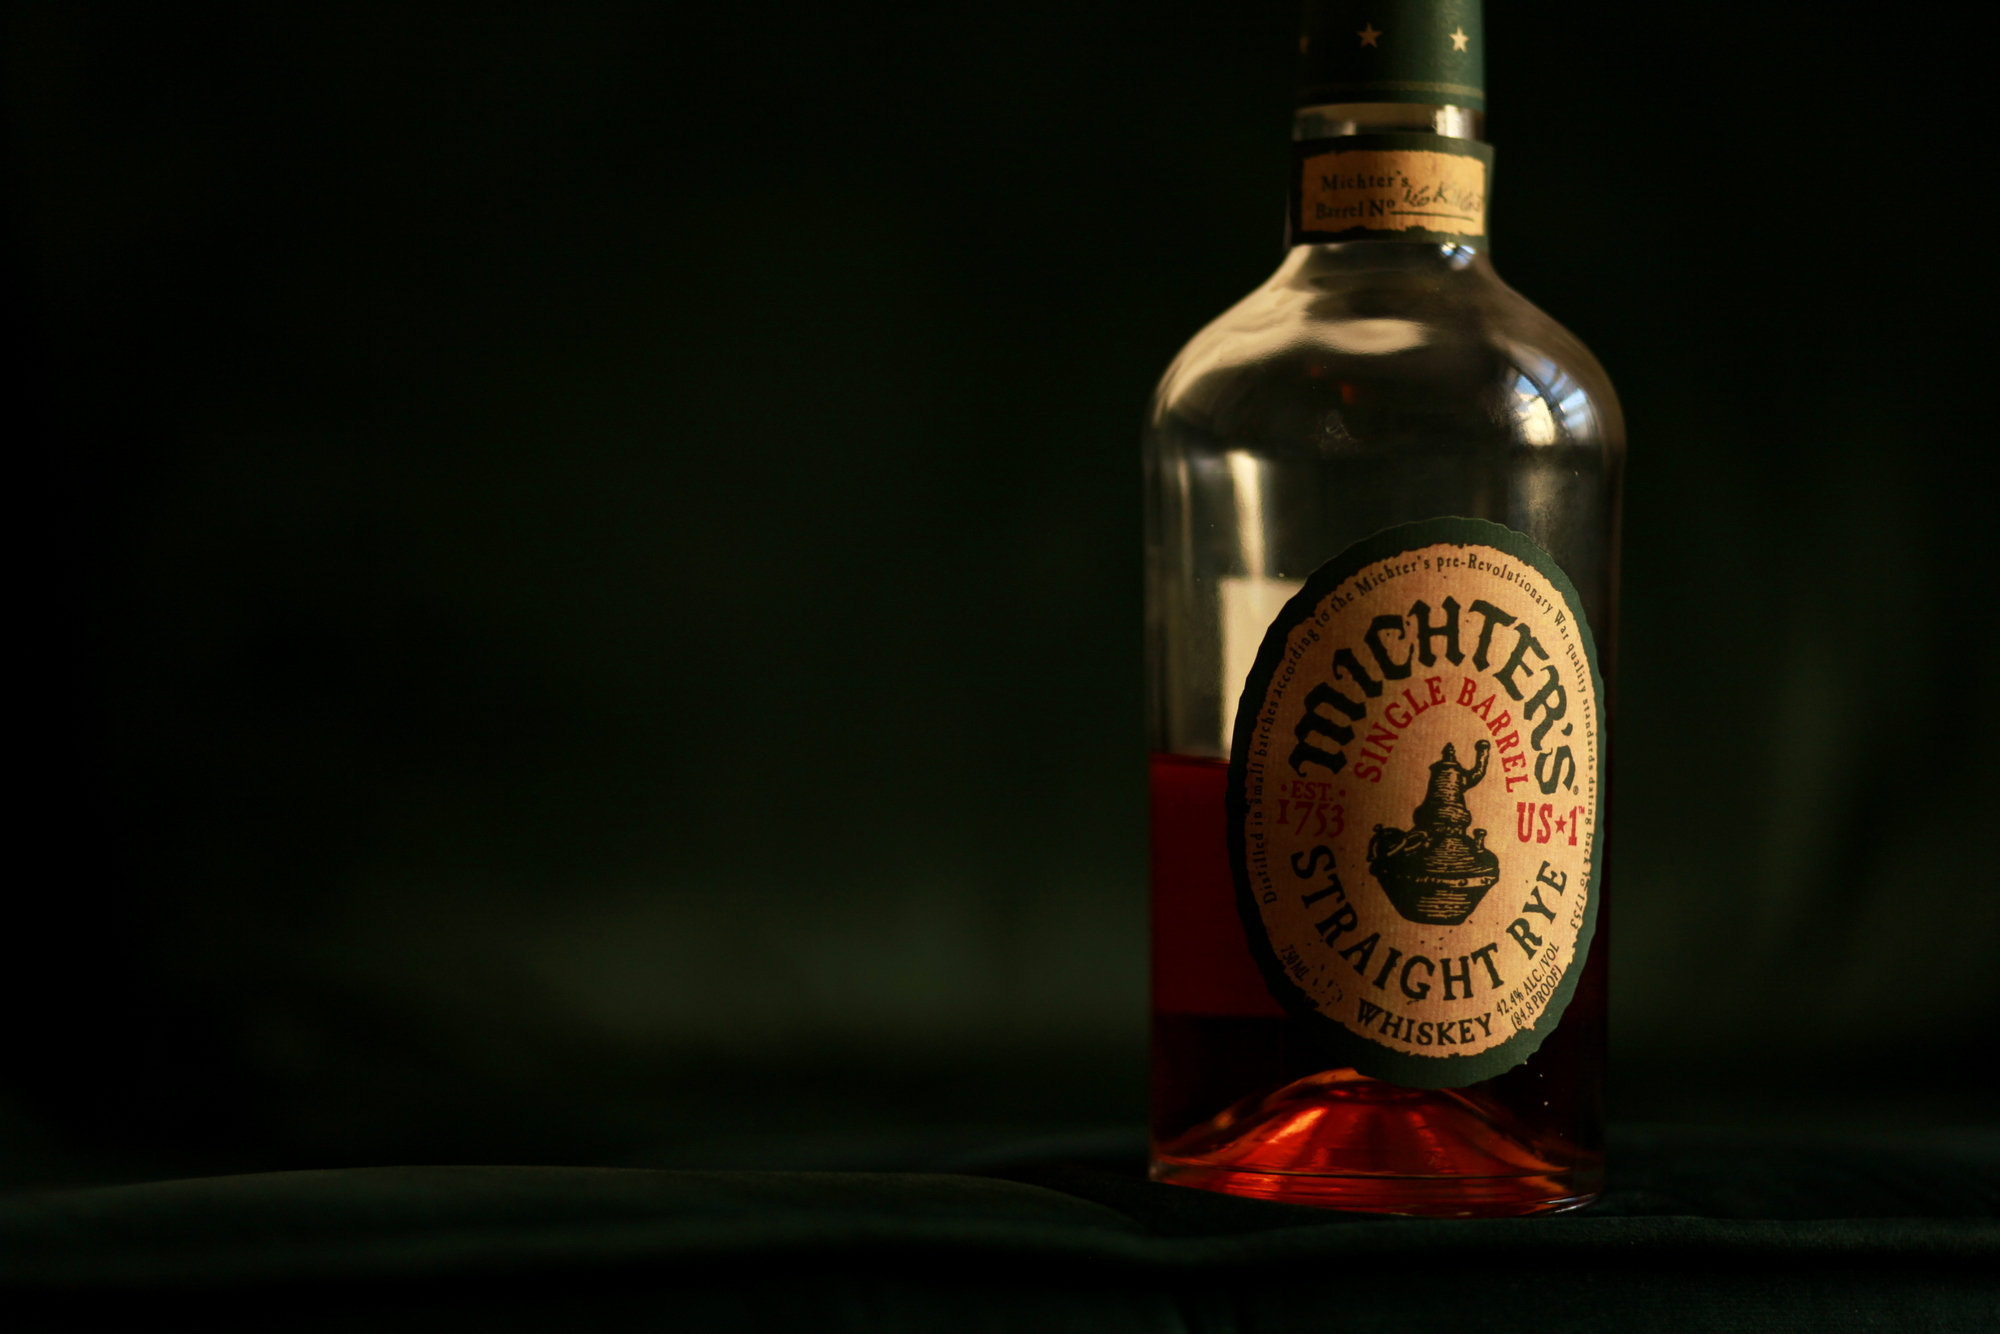 Micther's Rye Review